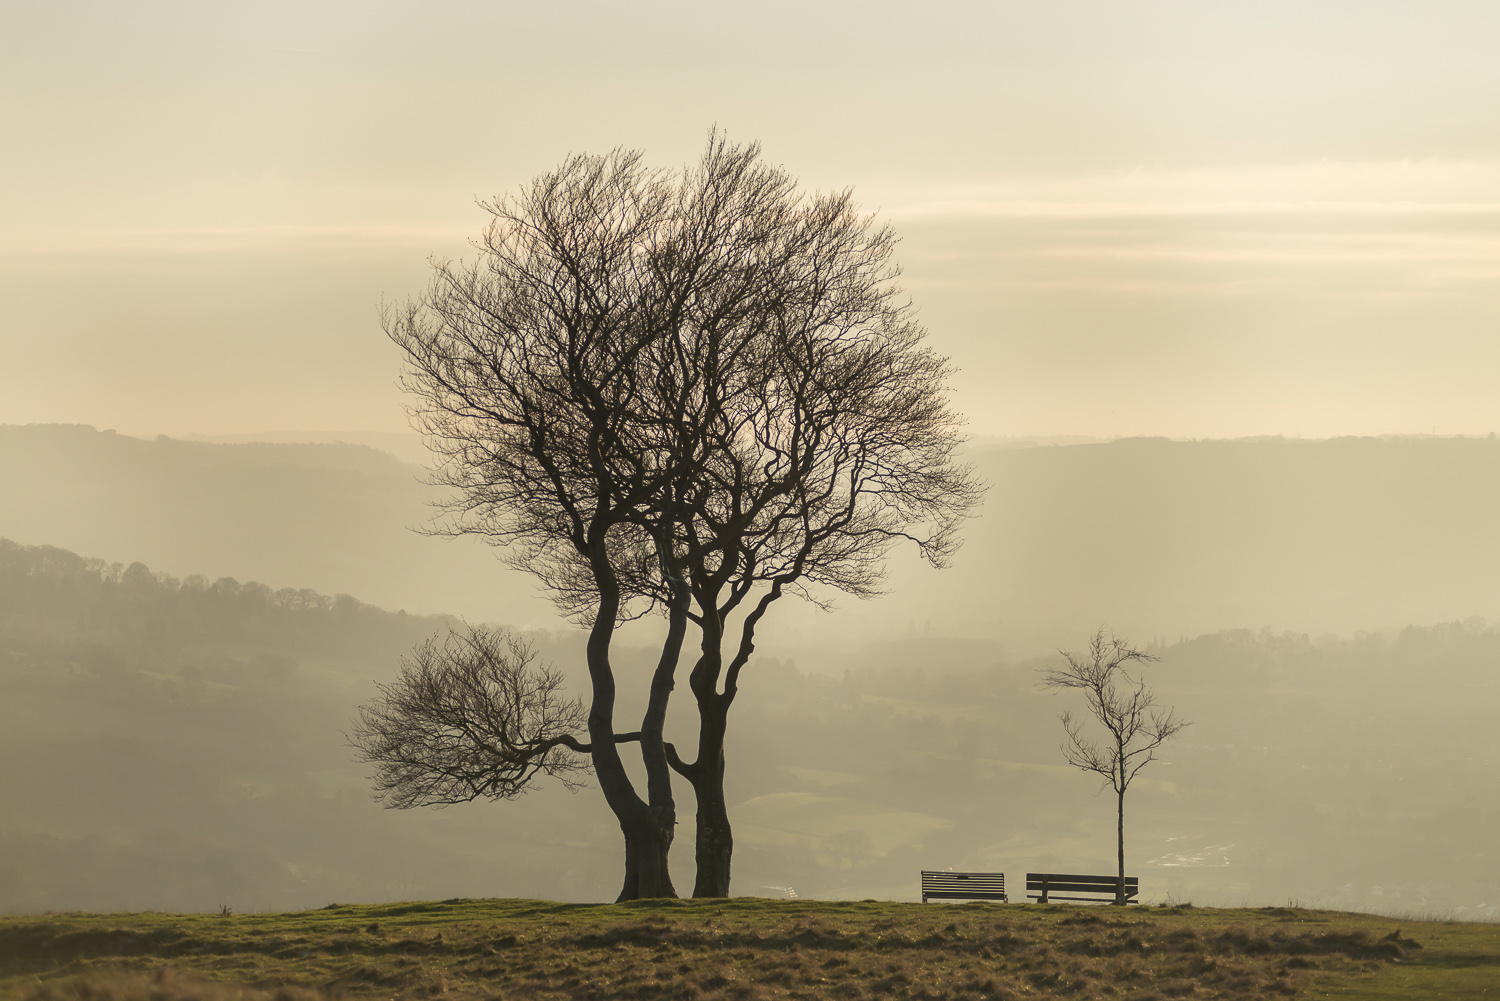 trees-Cleeve-Hill-winter-Gloucestershire-Jo-Kearney-photos-landscape-photography-video-landscapes.jpg